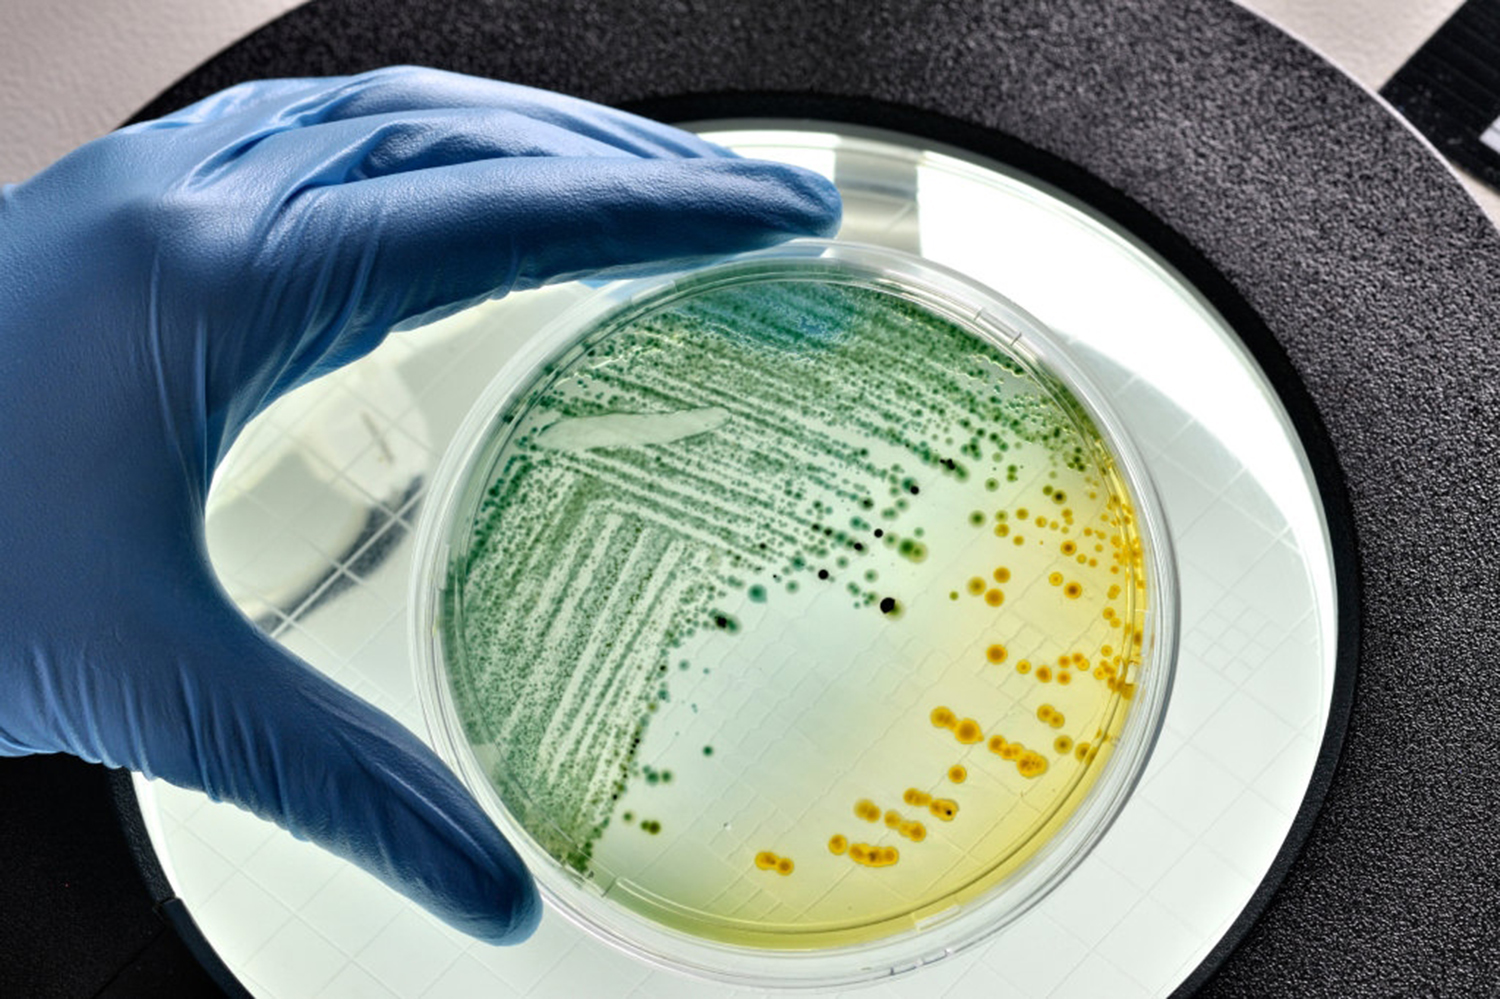 Picture of a petri dish with e.coli bacteria